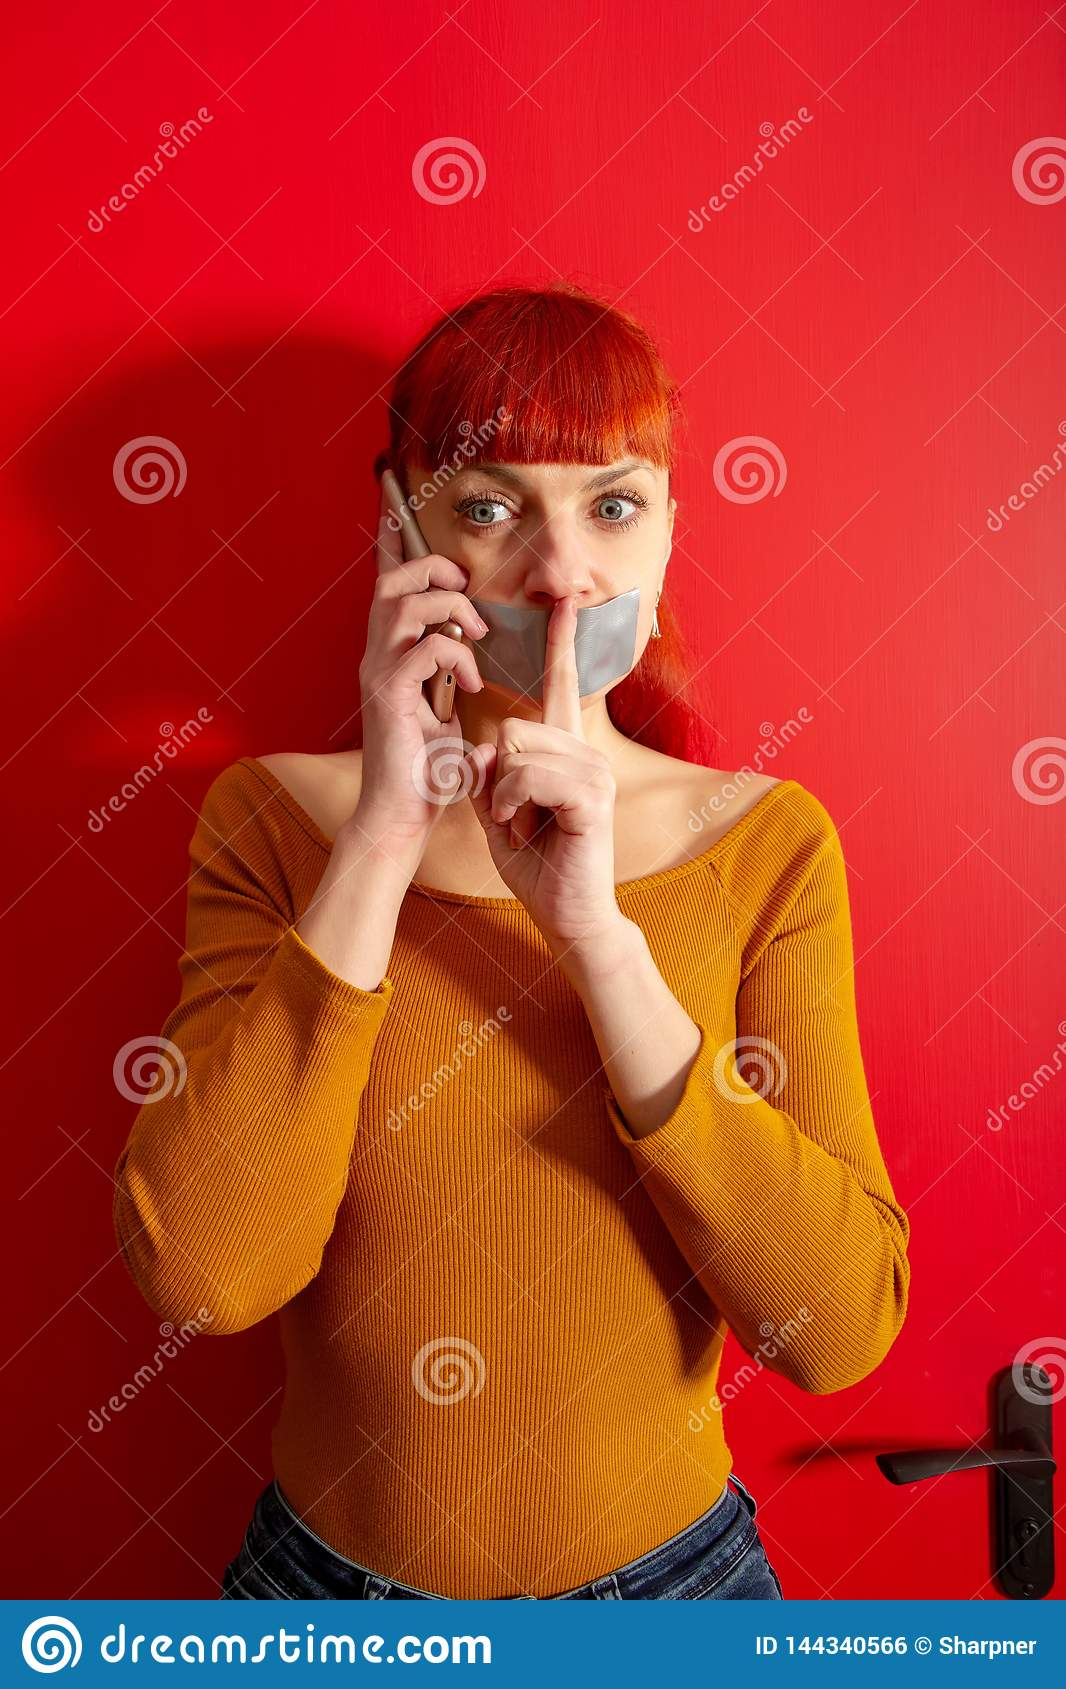 Girl Tape Lips Phone Stock Photo Image Of Pretty Cell 144340566